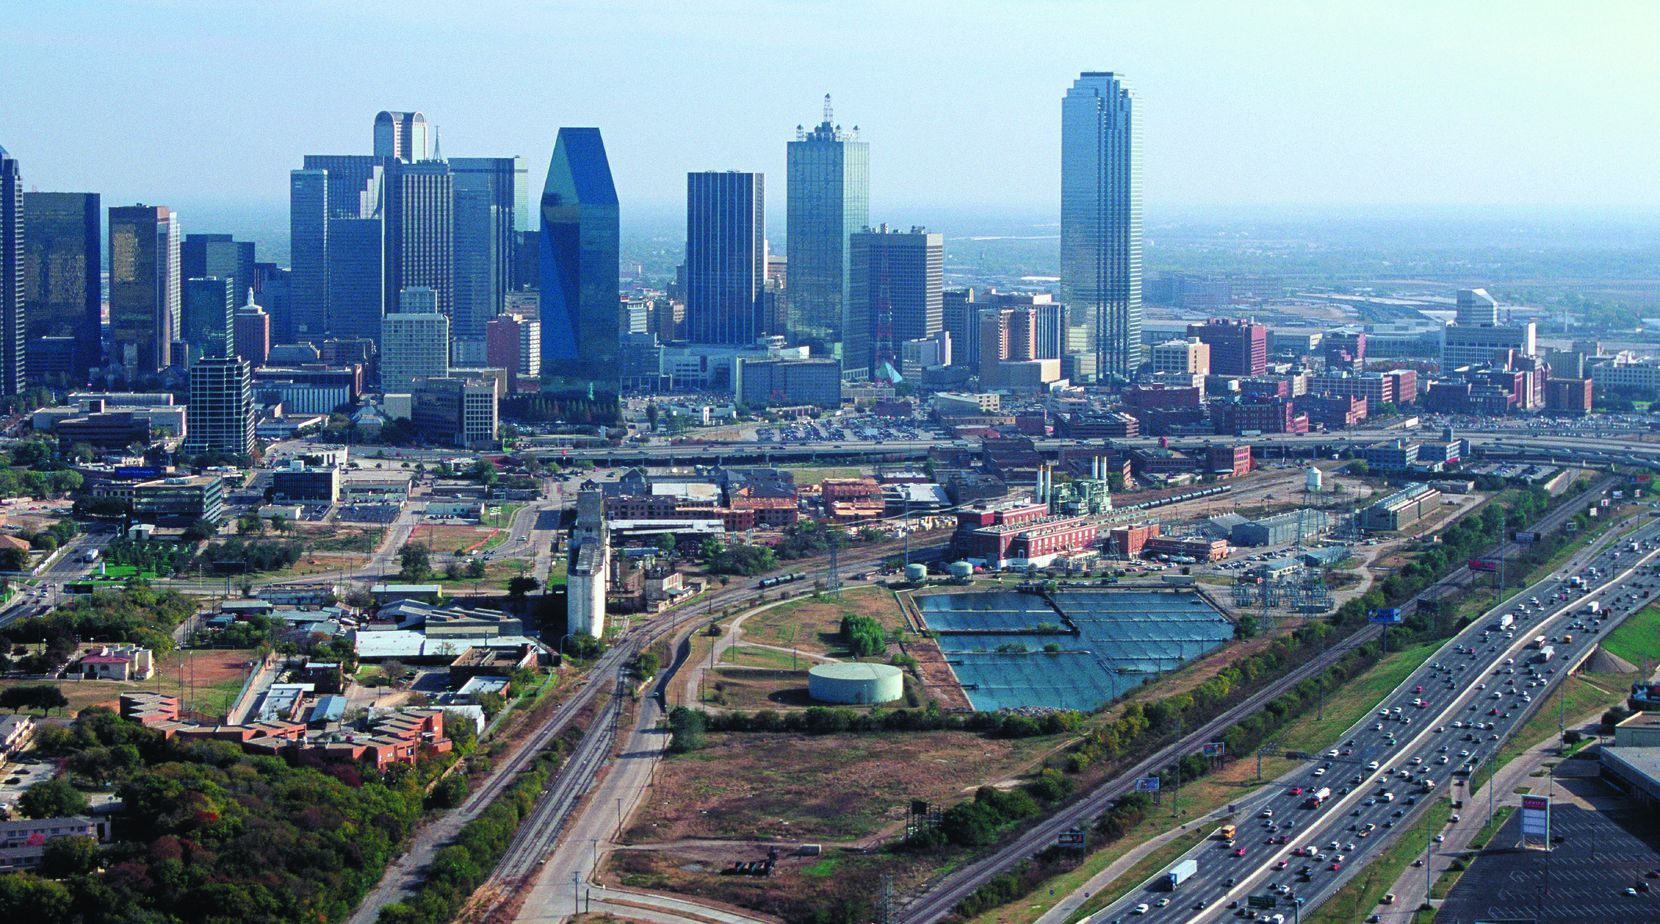 Twenty years ago Victory Park was an old rail yard, power plant and grain elevators north of downtown Dallas.